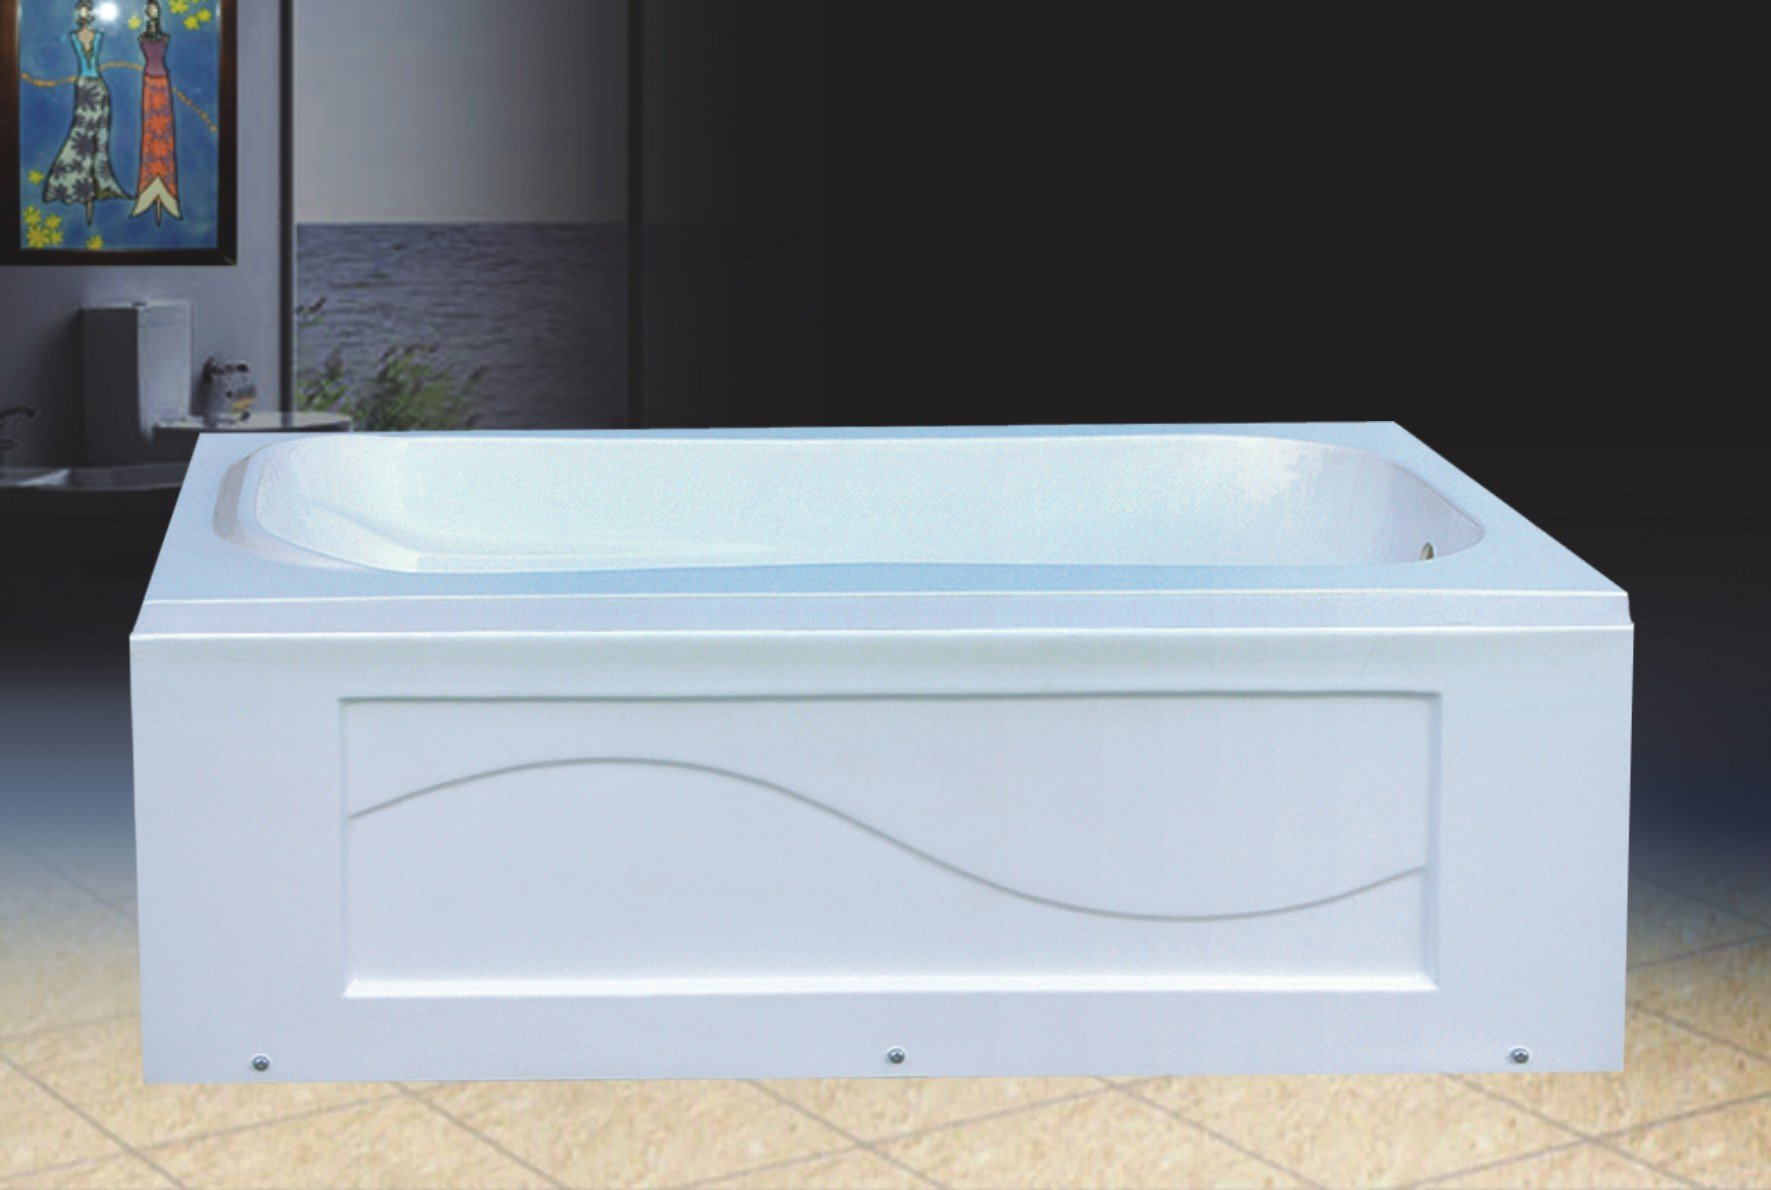 Red Heart Shaped Bathtub, Red Heart Shaped Bathtub Suppliers and ...